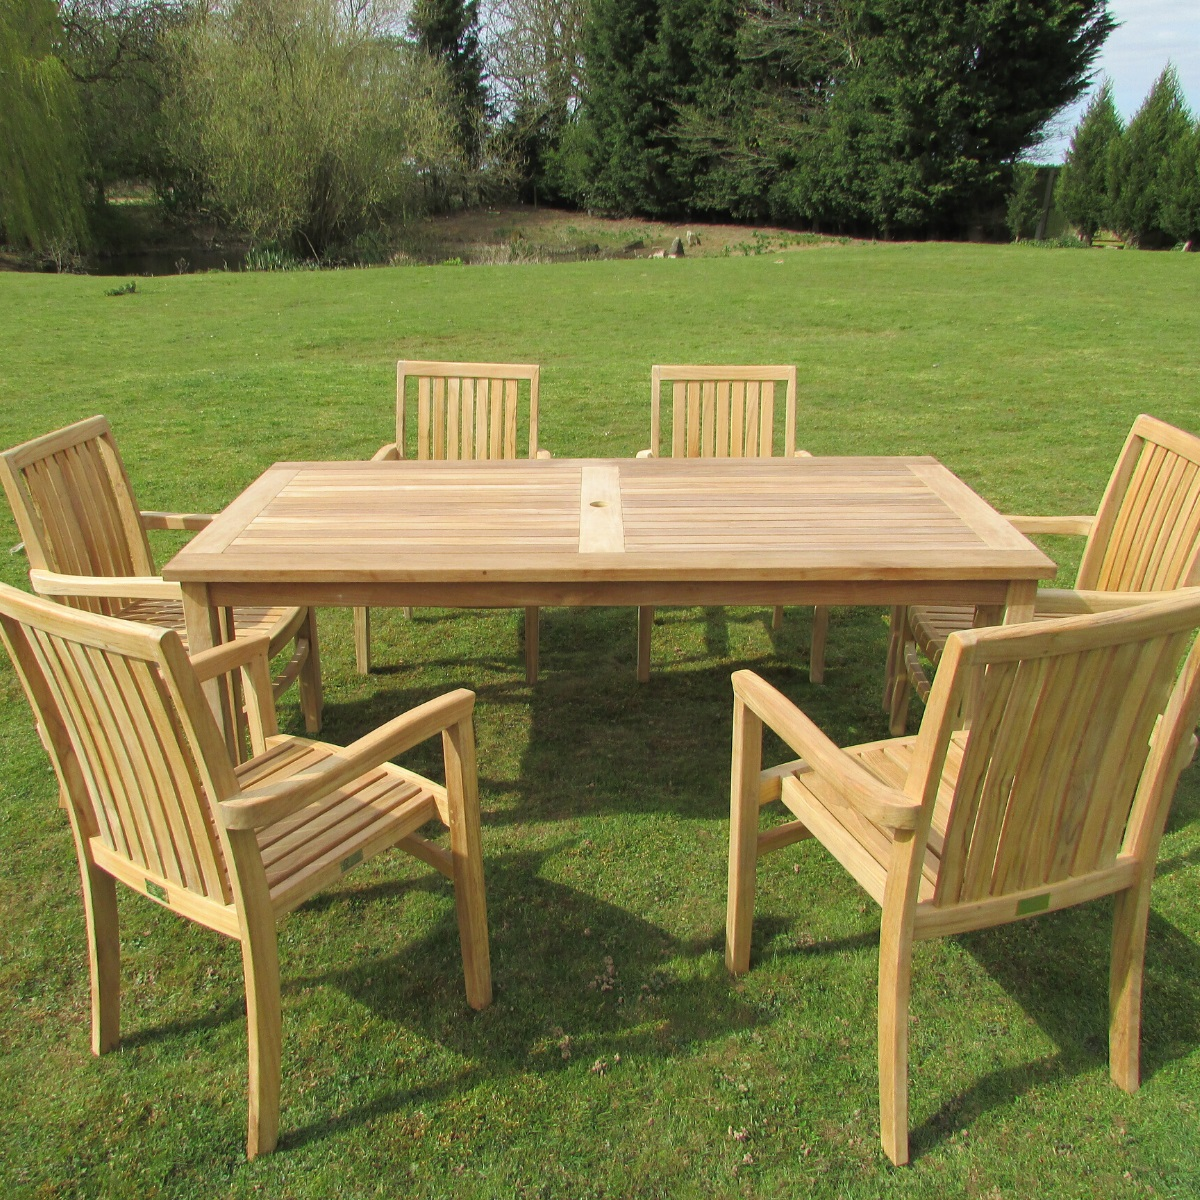 1 8m Rectangular Teak Outdoor Dining Table Woodberry